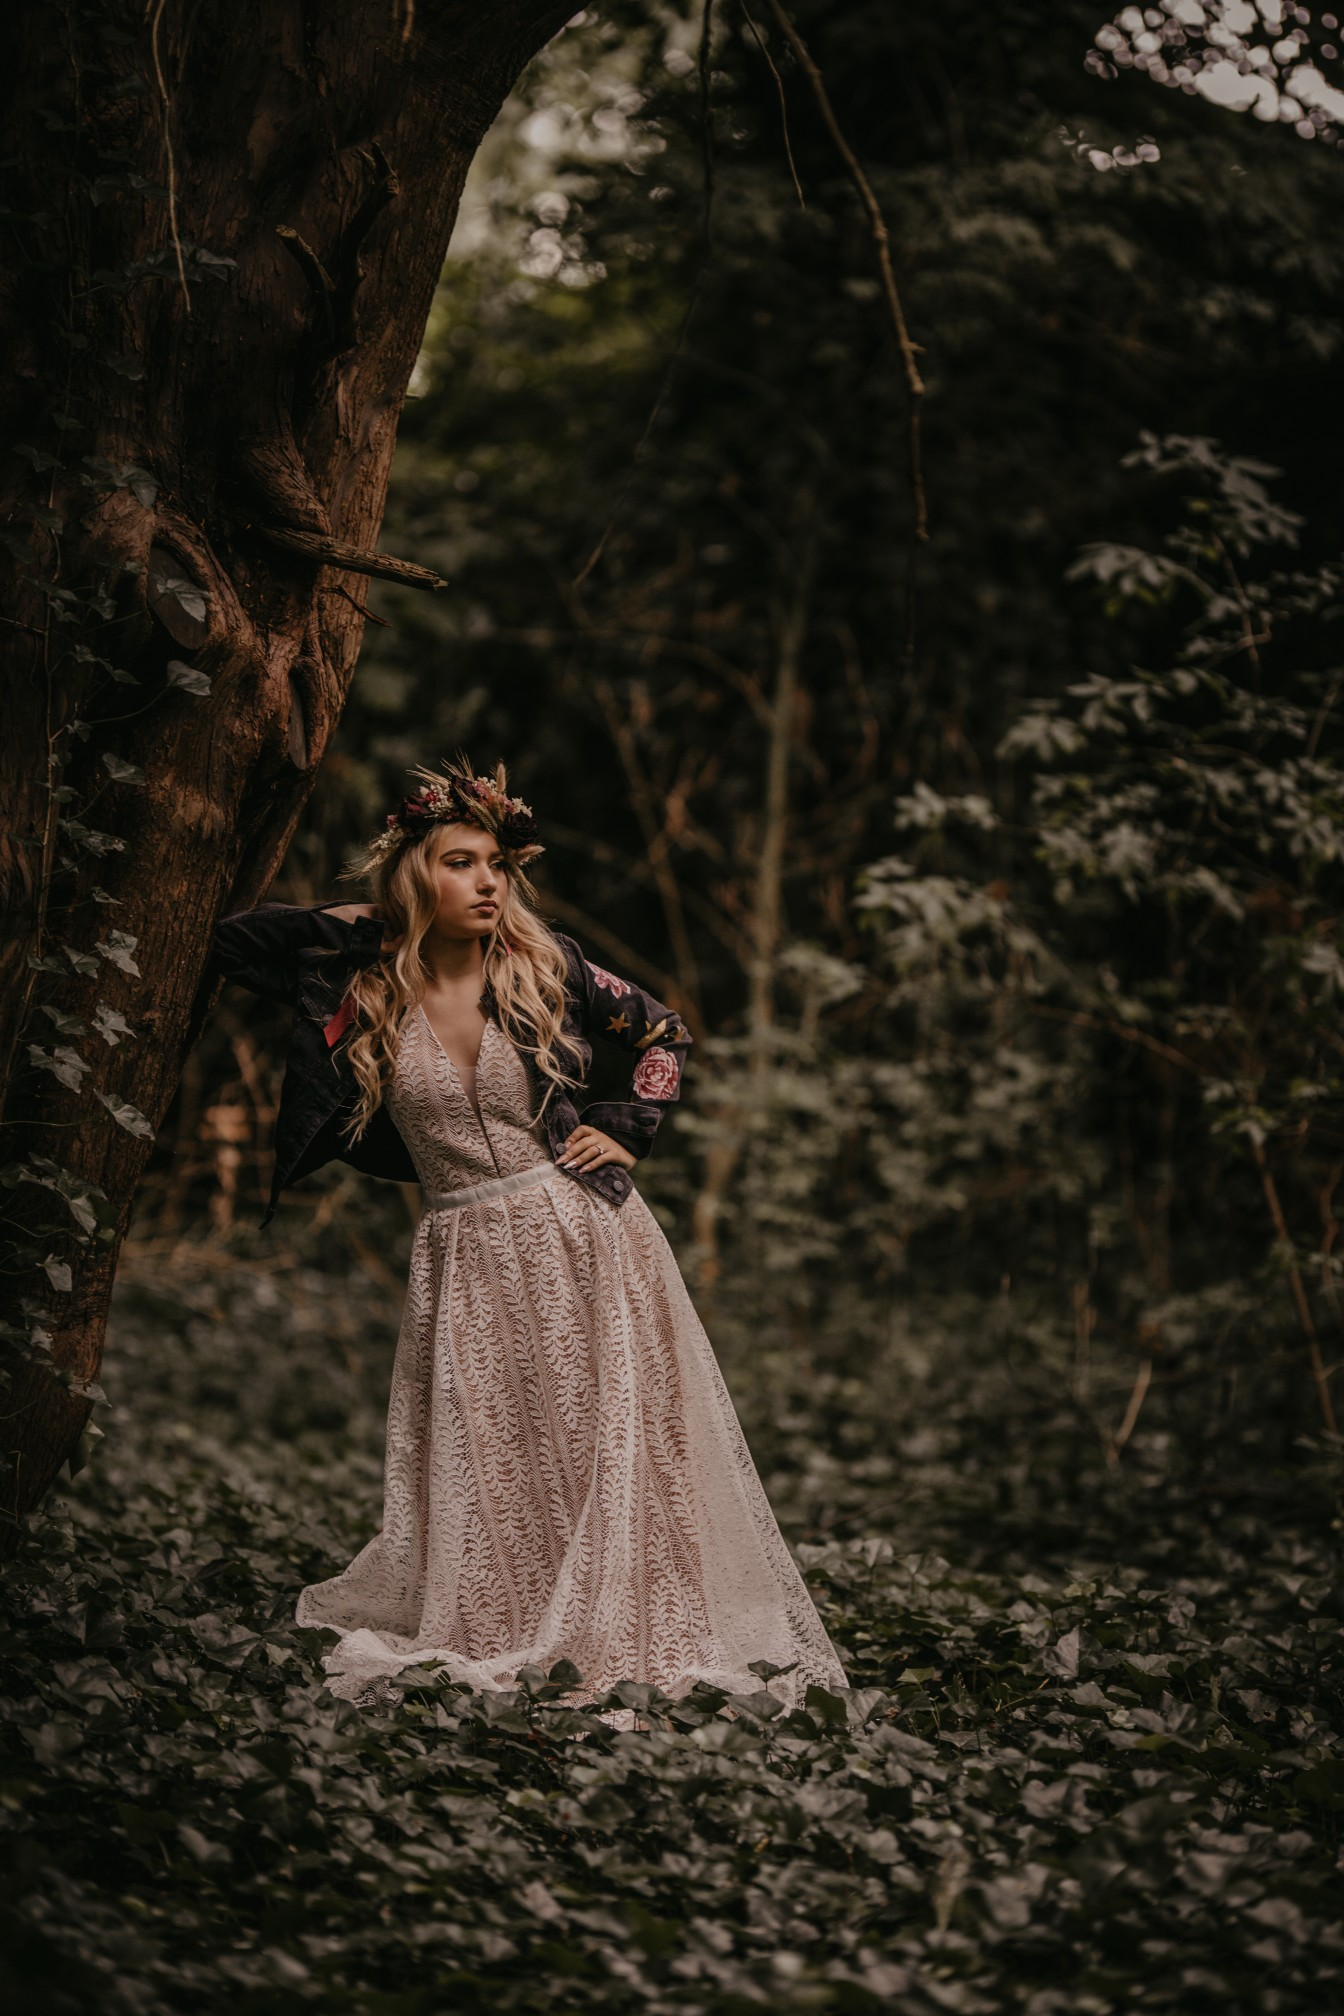 fairytale boho wedding - alternative forest wedding - bride leaning against a tree